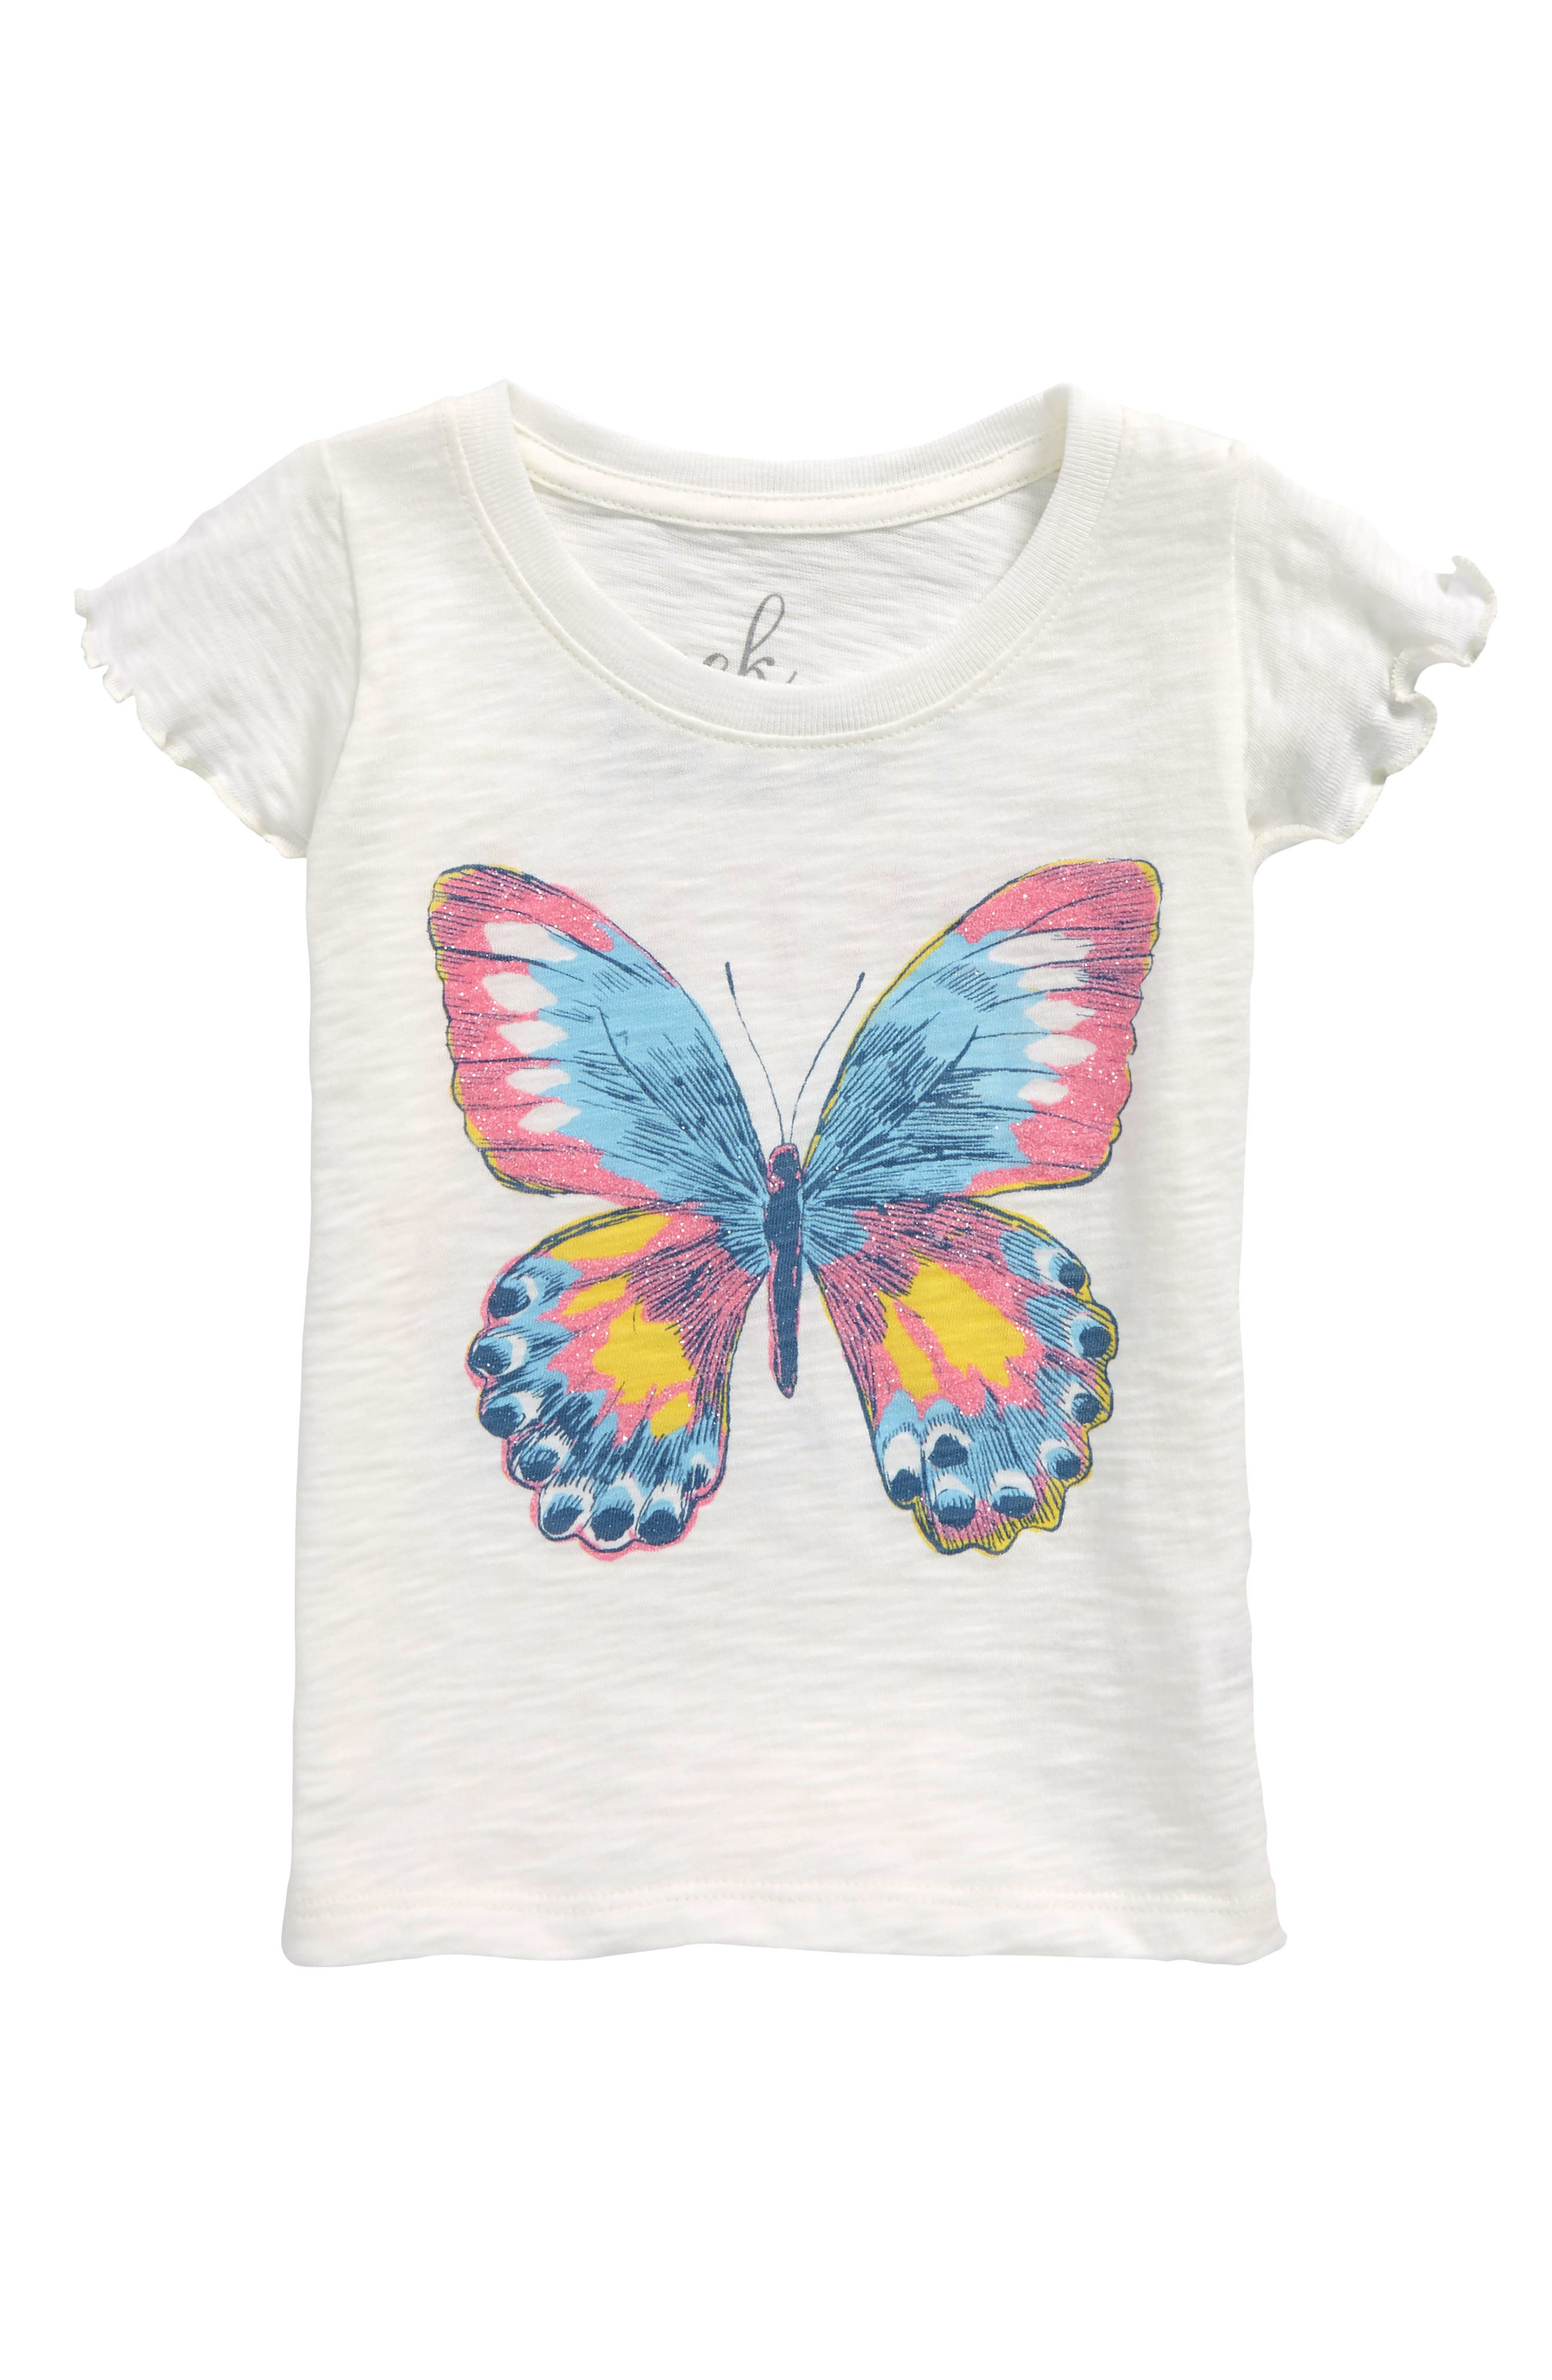 Peek Butterfly Graphic Tee (Baby Girls)